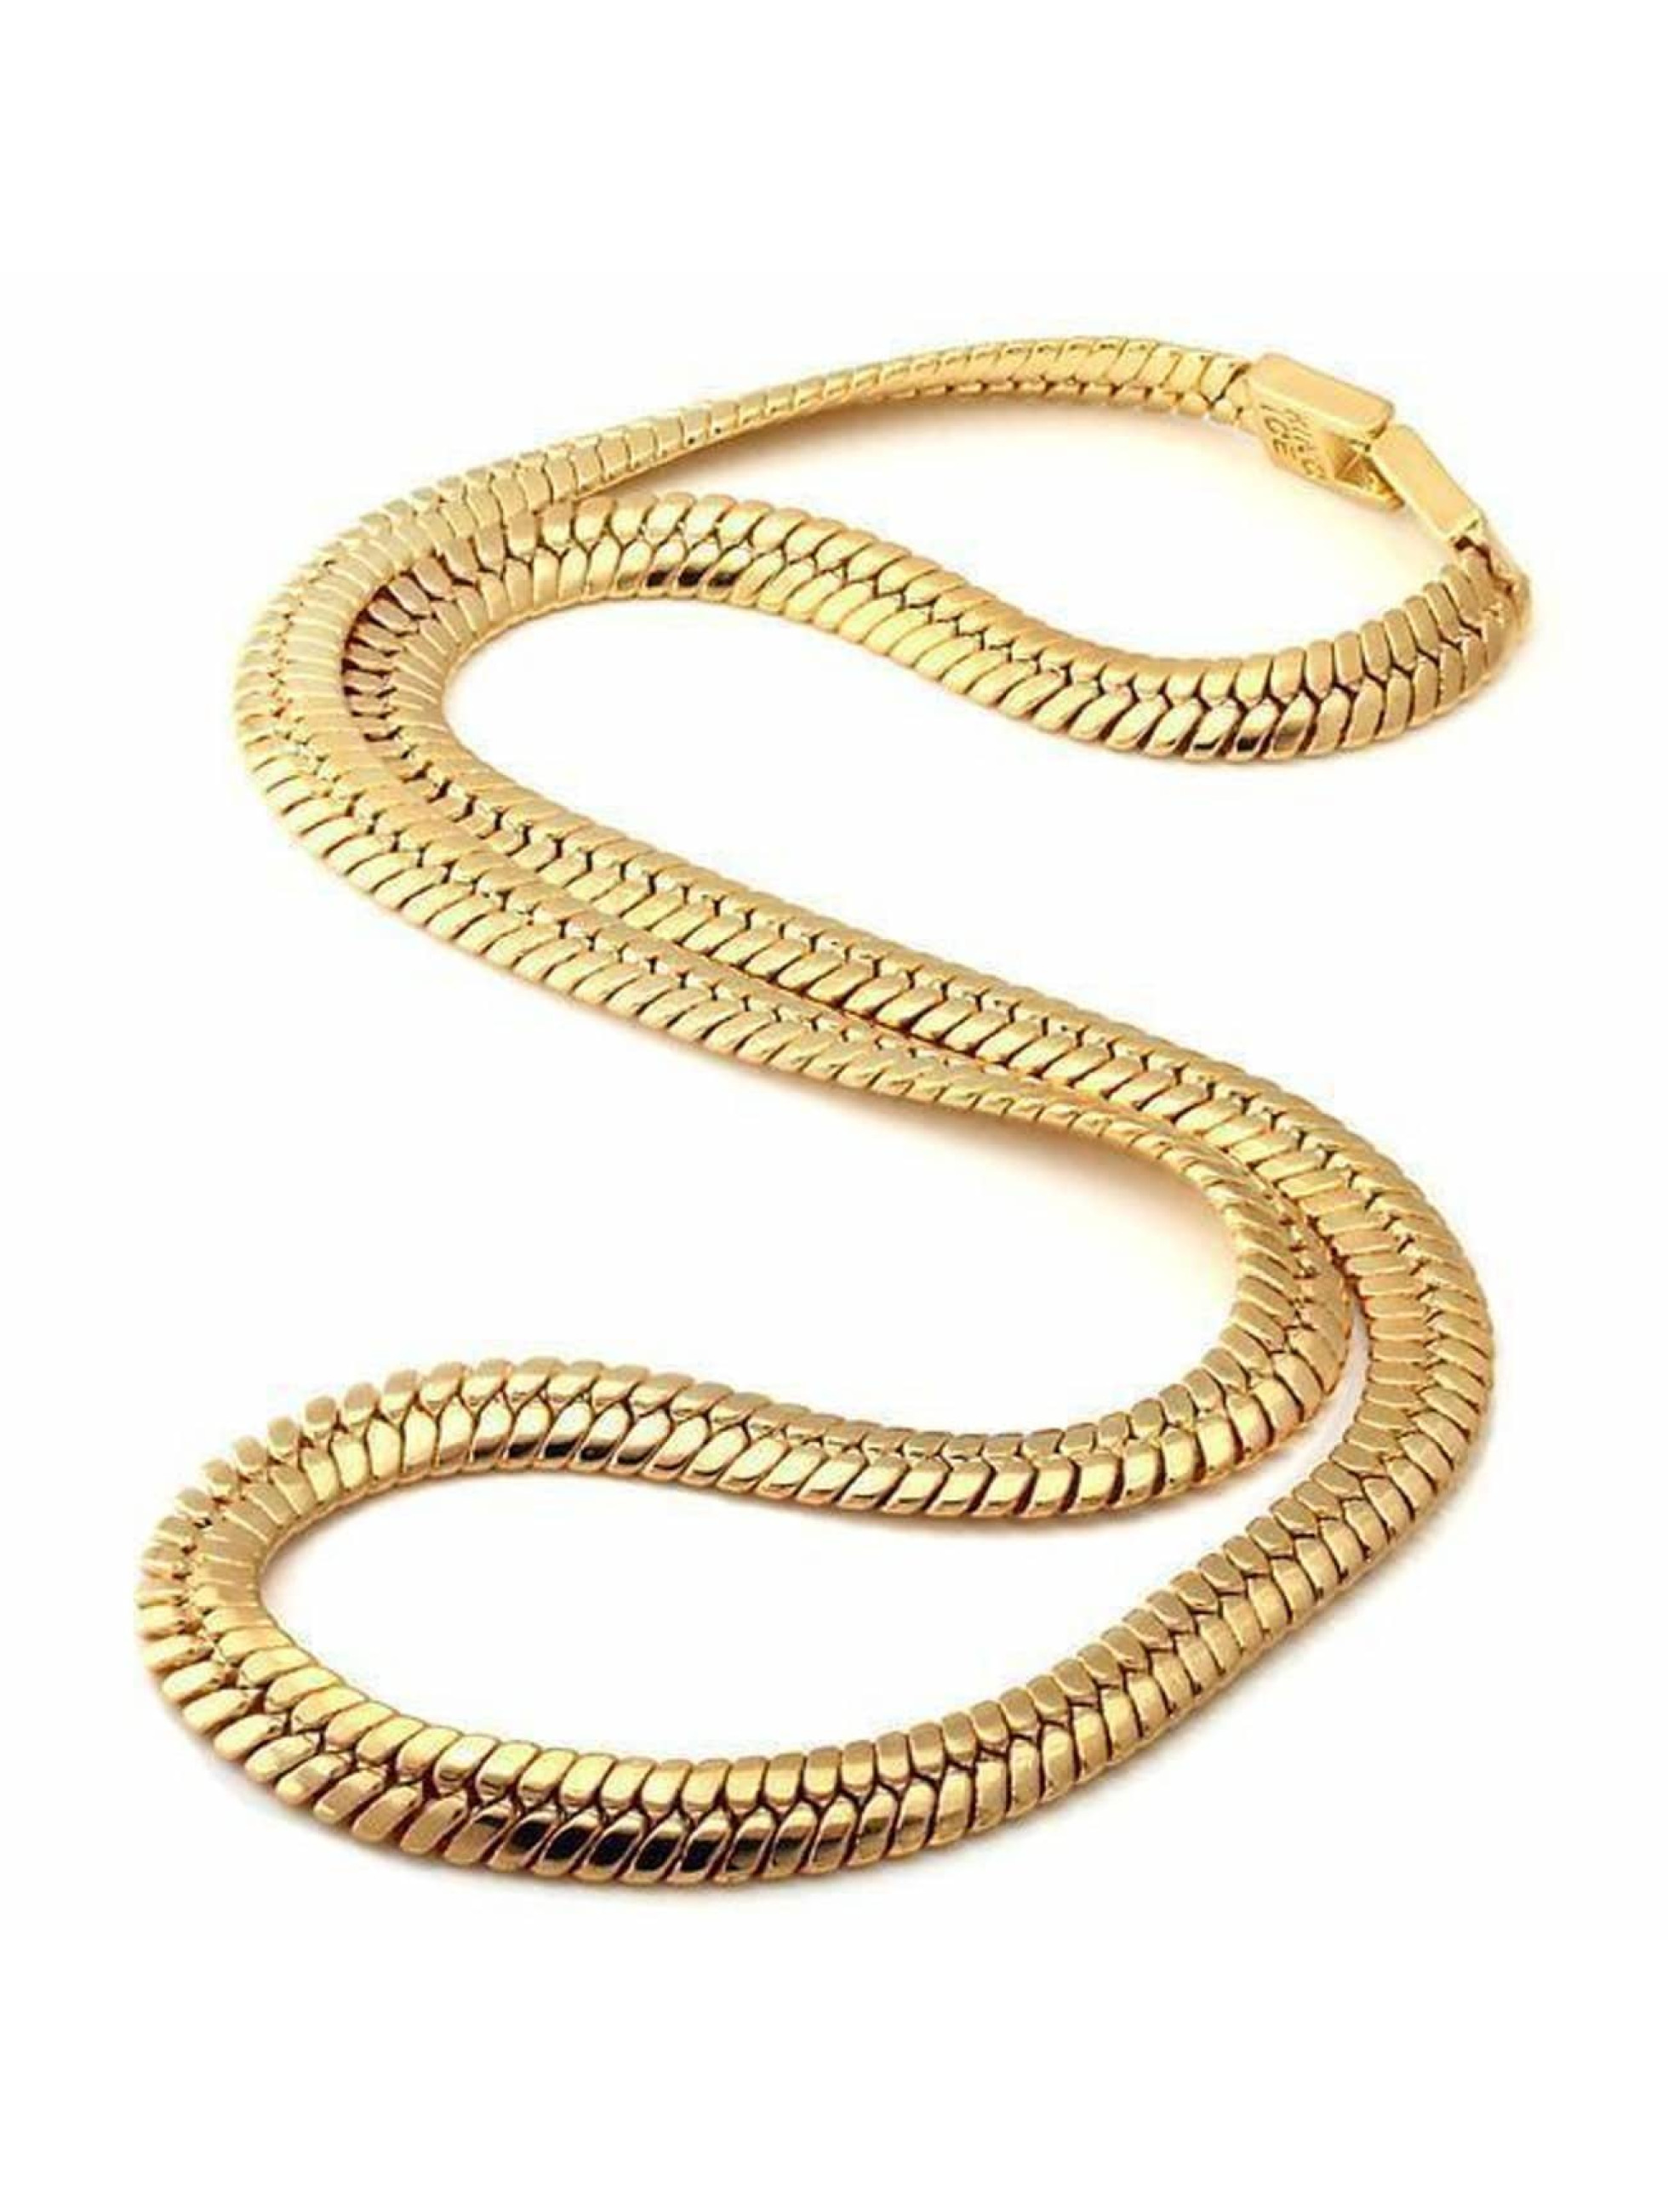 KING ICE Collier Gold_Plated 10mm Thick Herringbone or